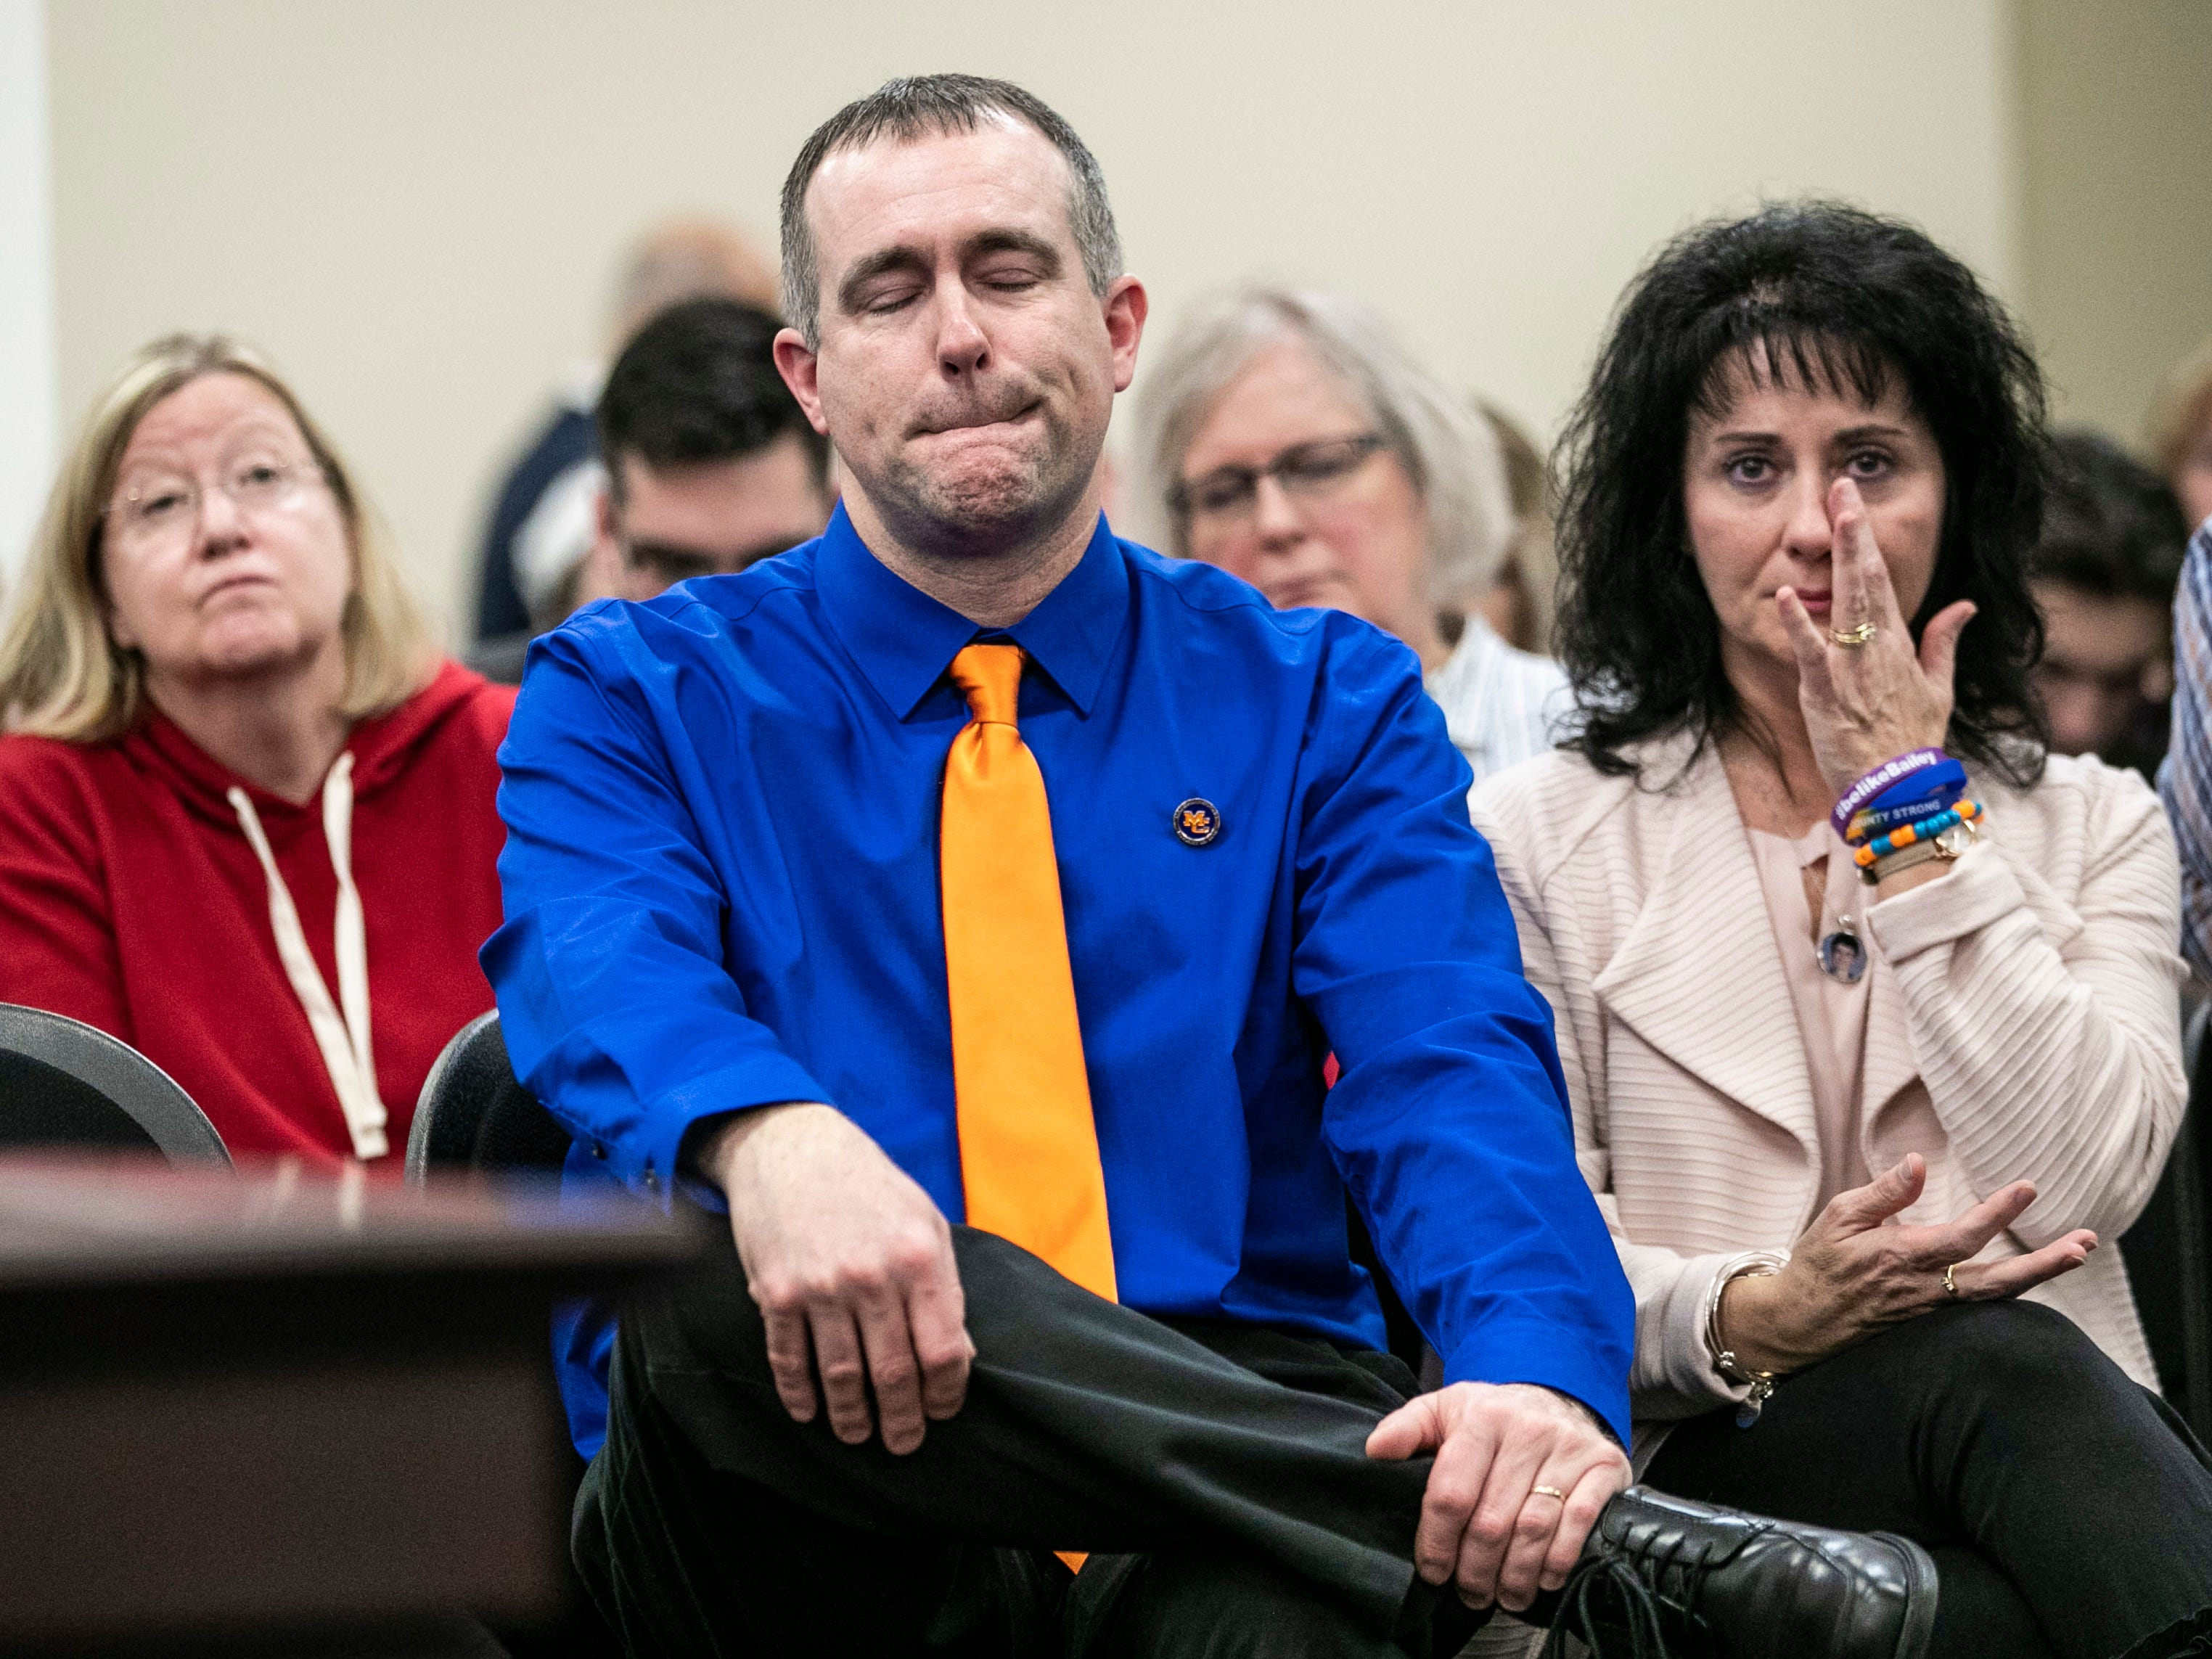 Brian Cope sits next to wife Theresa Cope as they listened during a hearing on SB 1 Thursday in Frankfort. Their son Preston Cope was one of two teenagers killed in the Marshall County High School shooting in 2018.